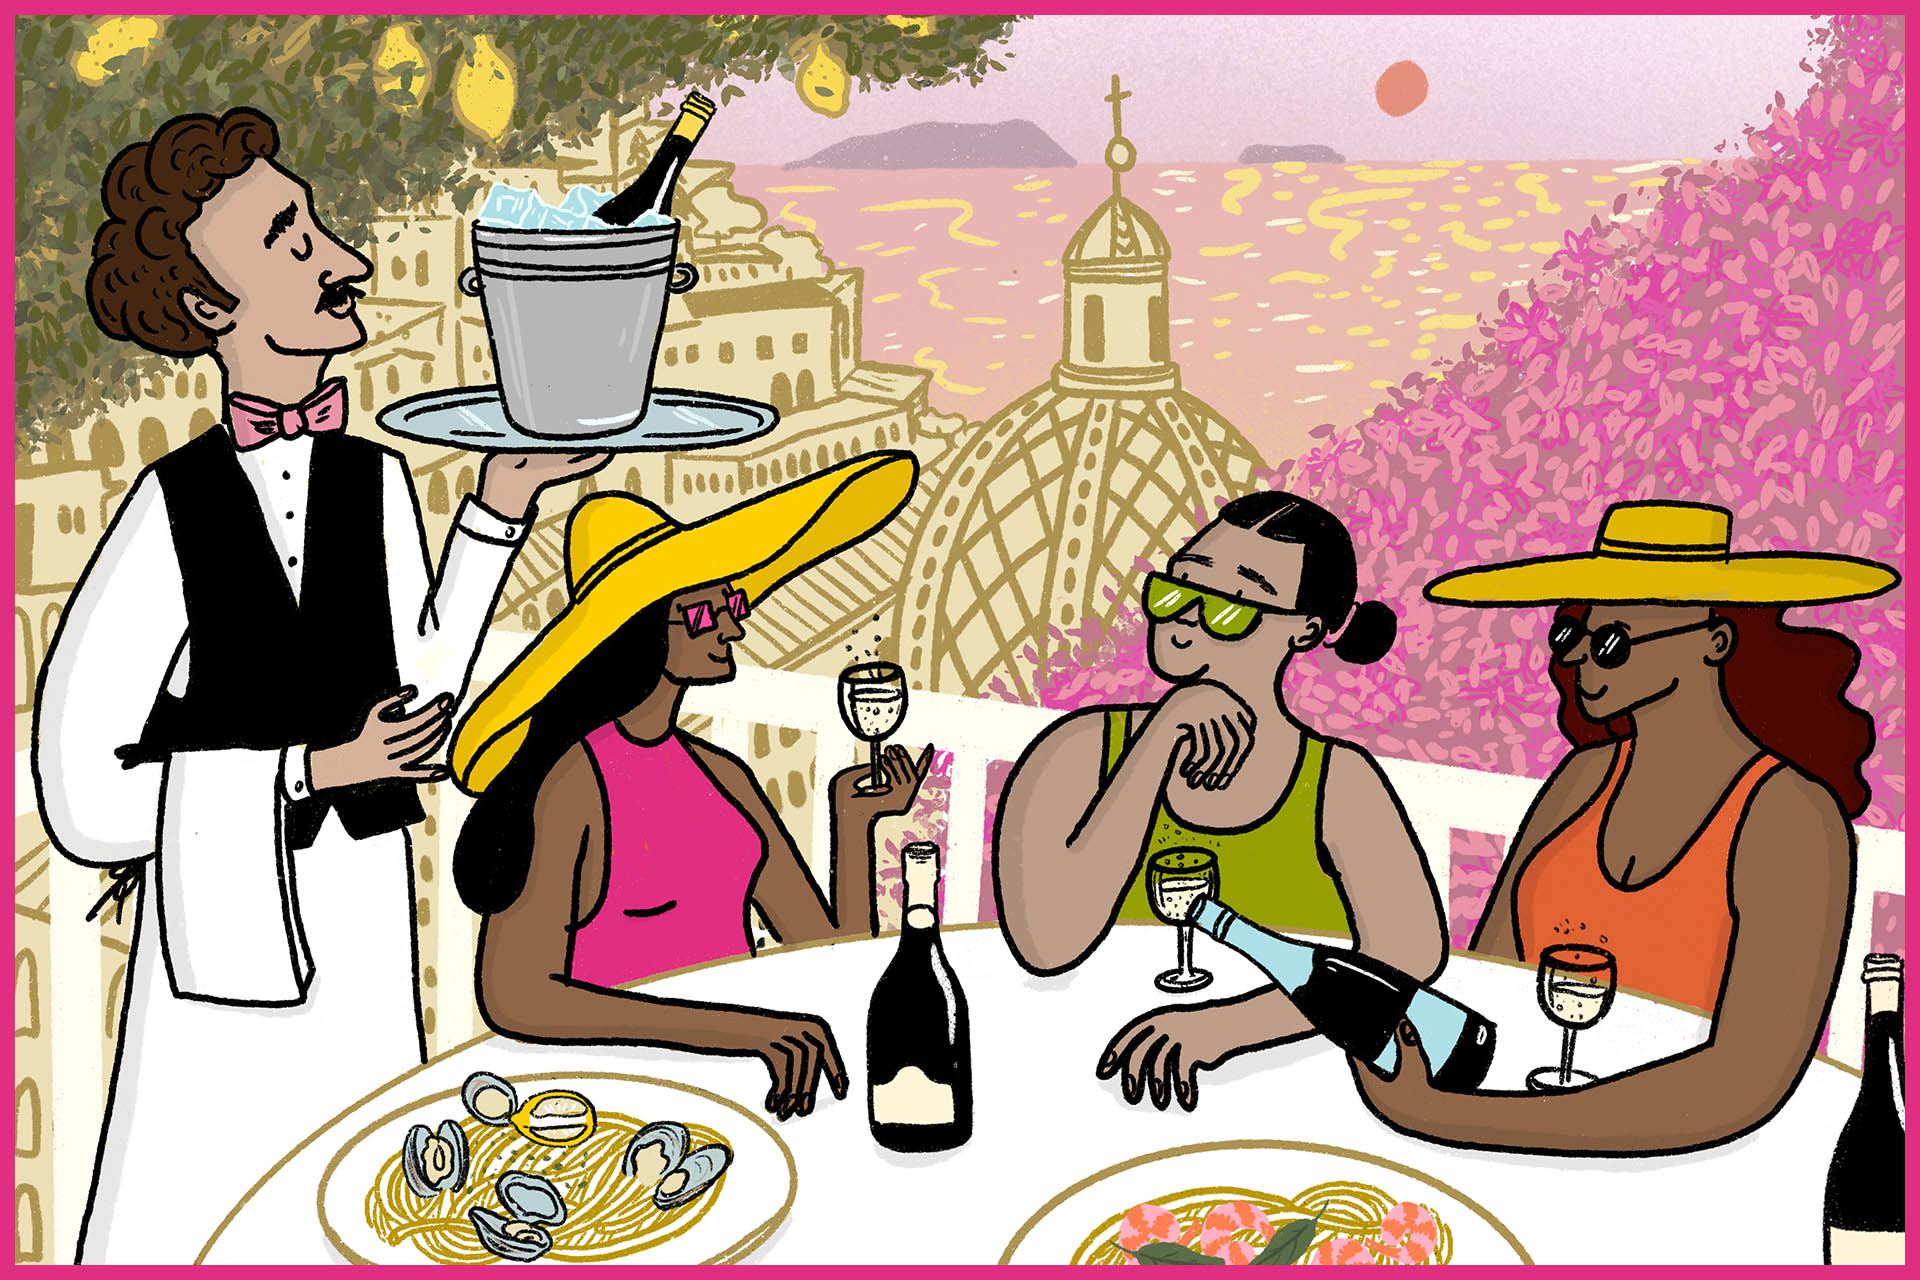 Illustration of people around a table in an Italian waterfront setting pouring what appears to be bottles of sparkling wine.